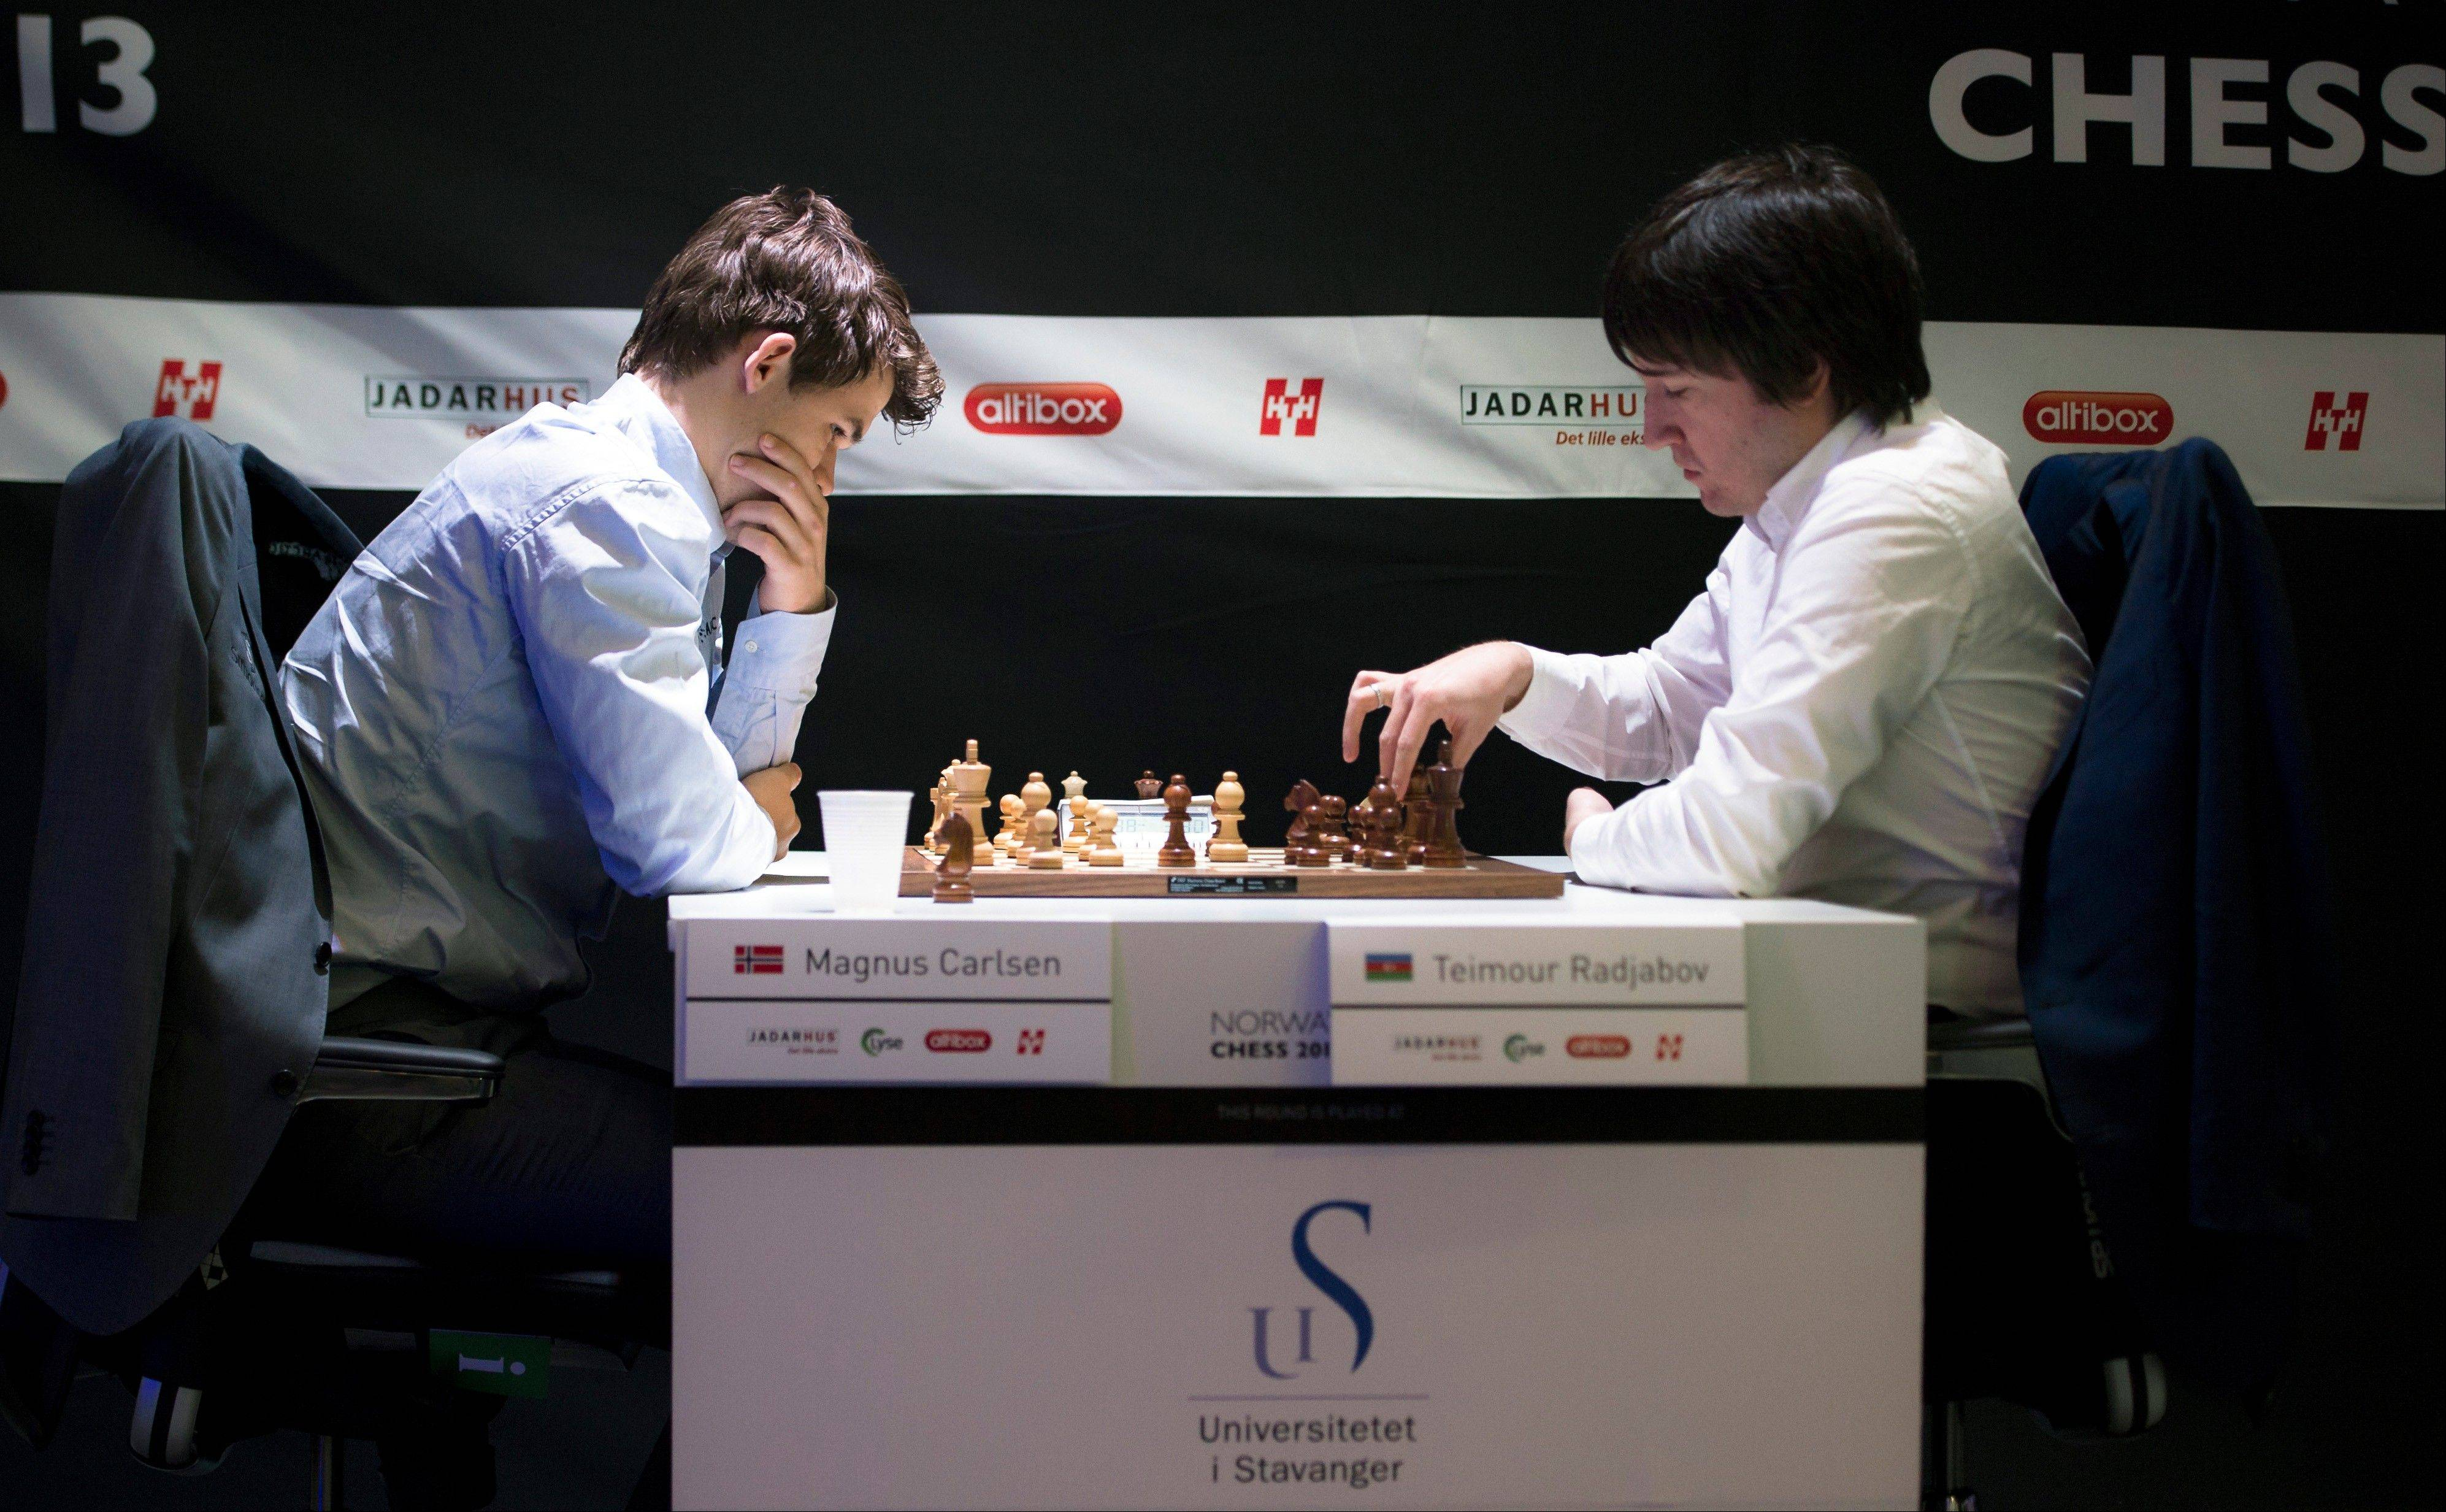 Norway's Magnus Carlsen, left, plays Tuesday against Azerbaijan's Teimour Radjabov during the Norway Chess competition 2013 in Sandnes near Stavanger, Norway.